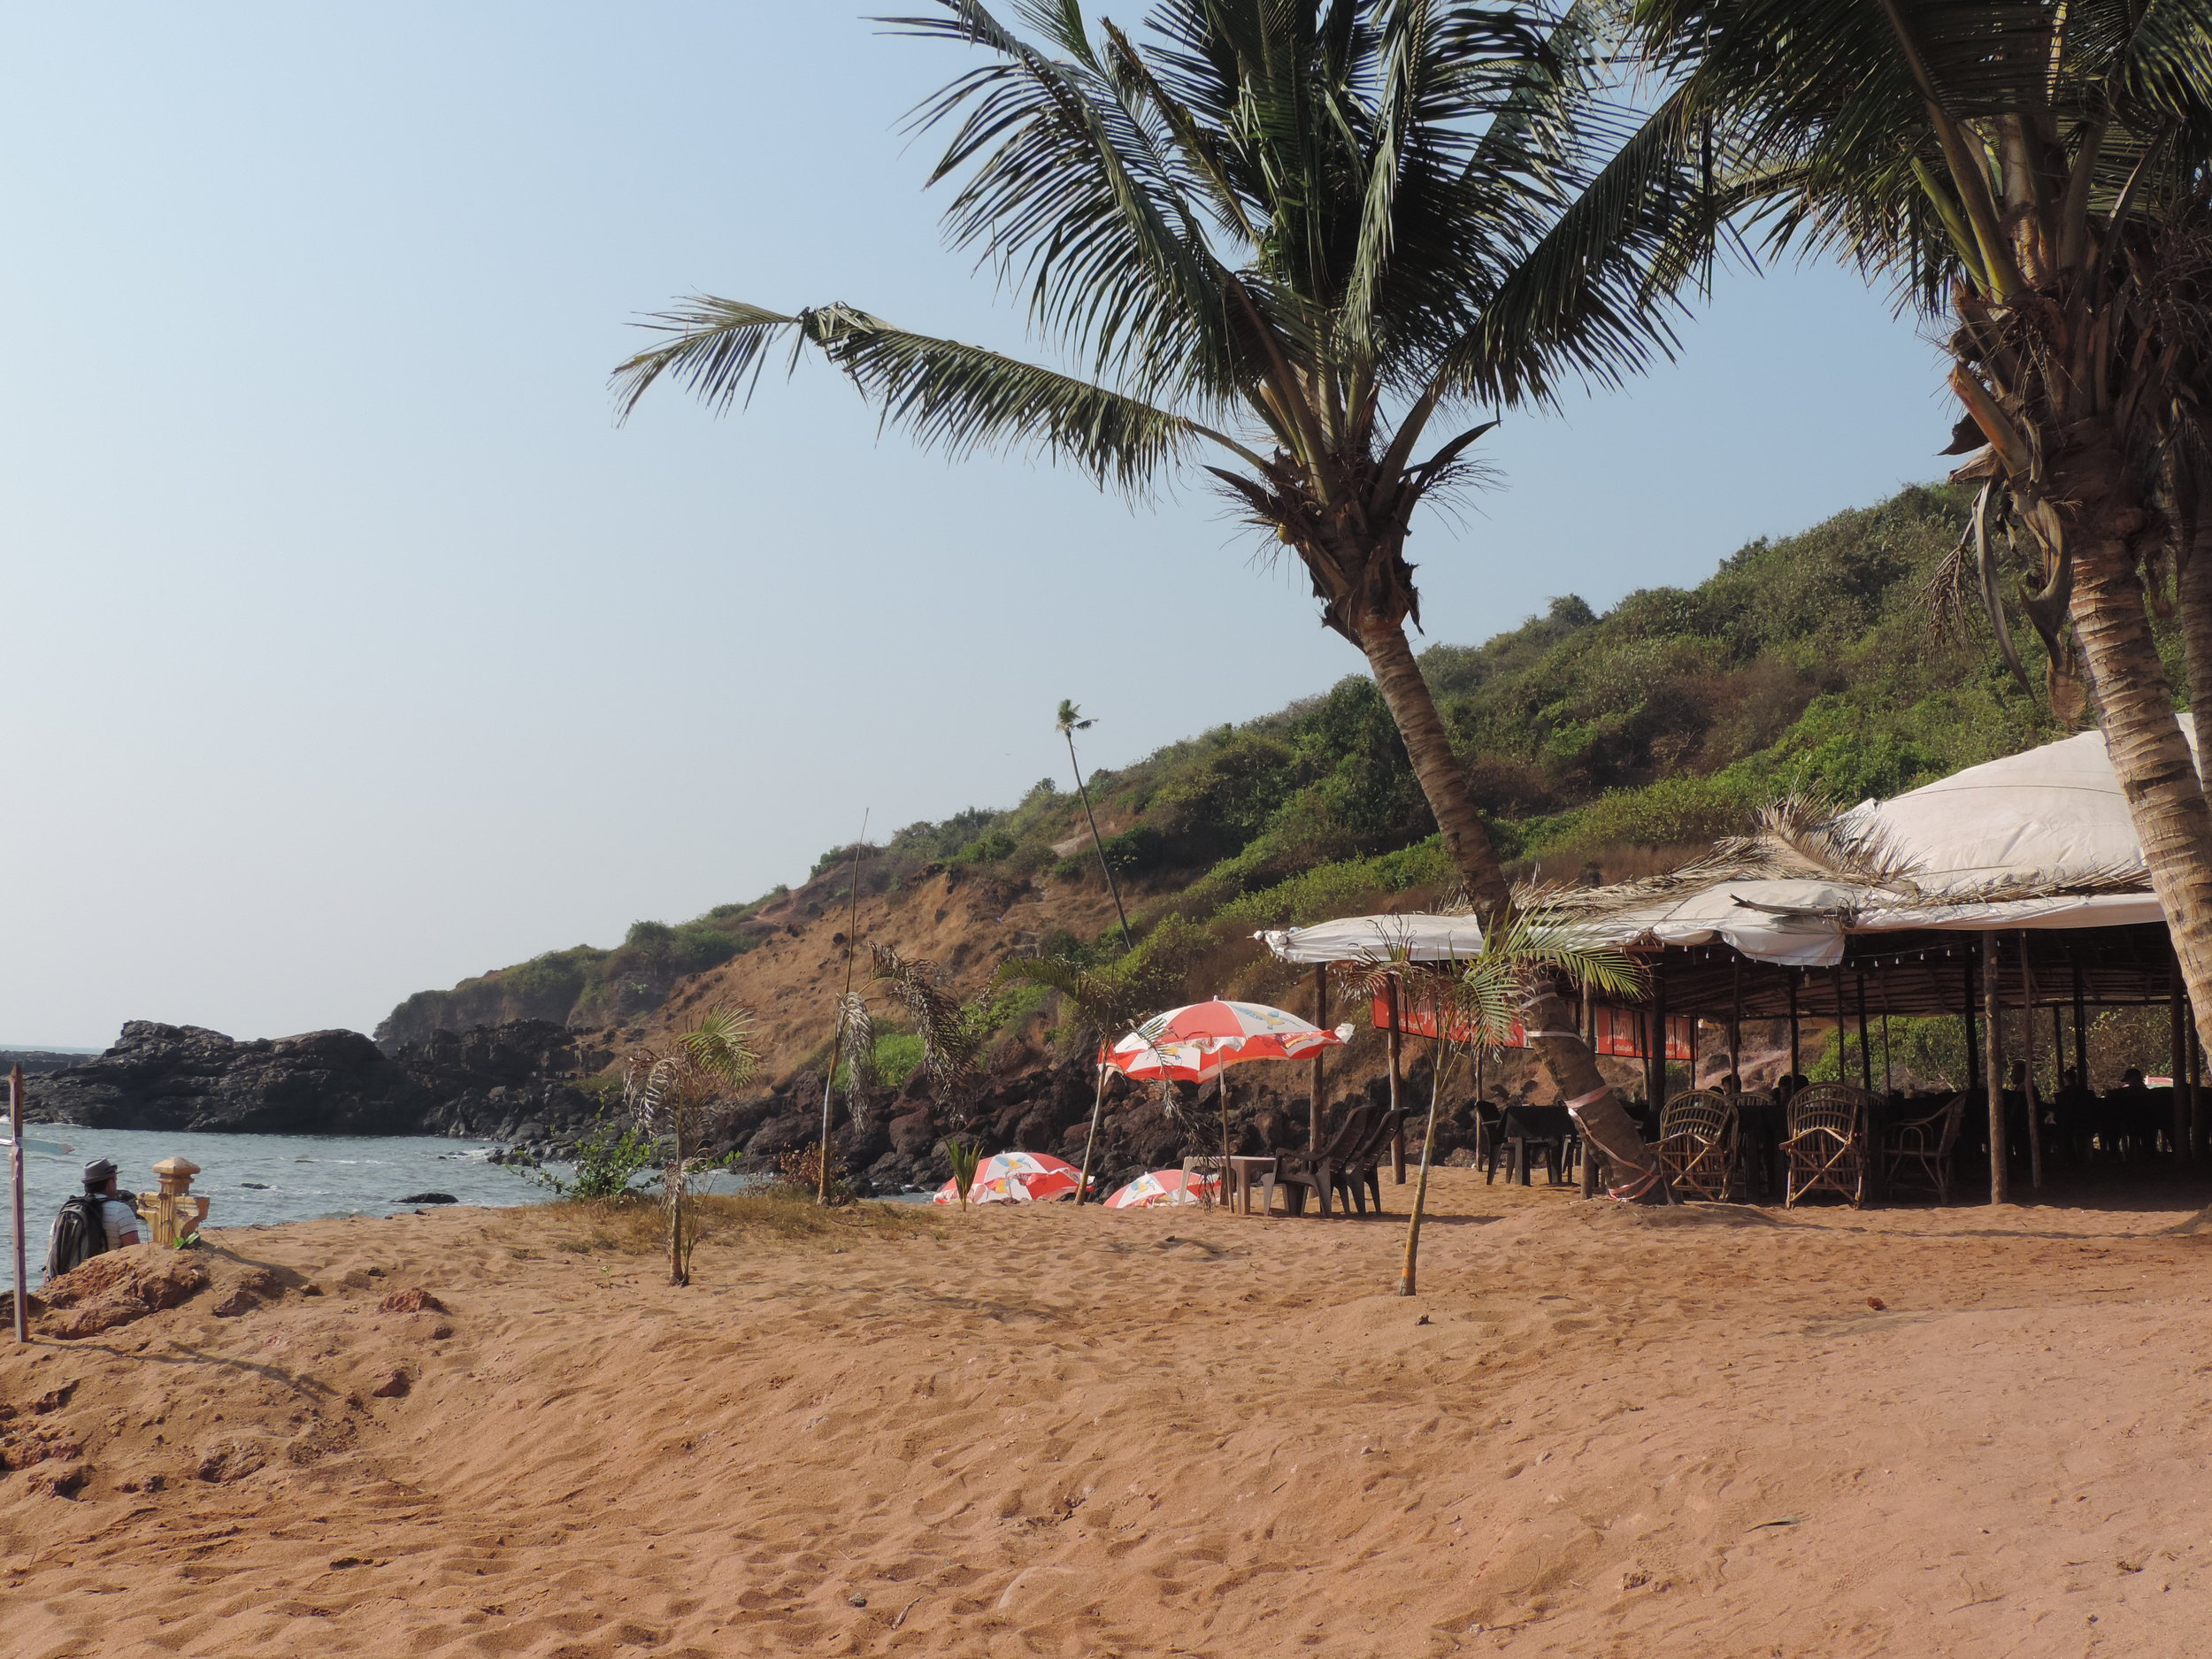 Sipping cold beer on a hot beach in India.